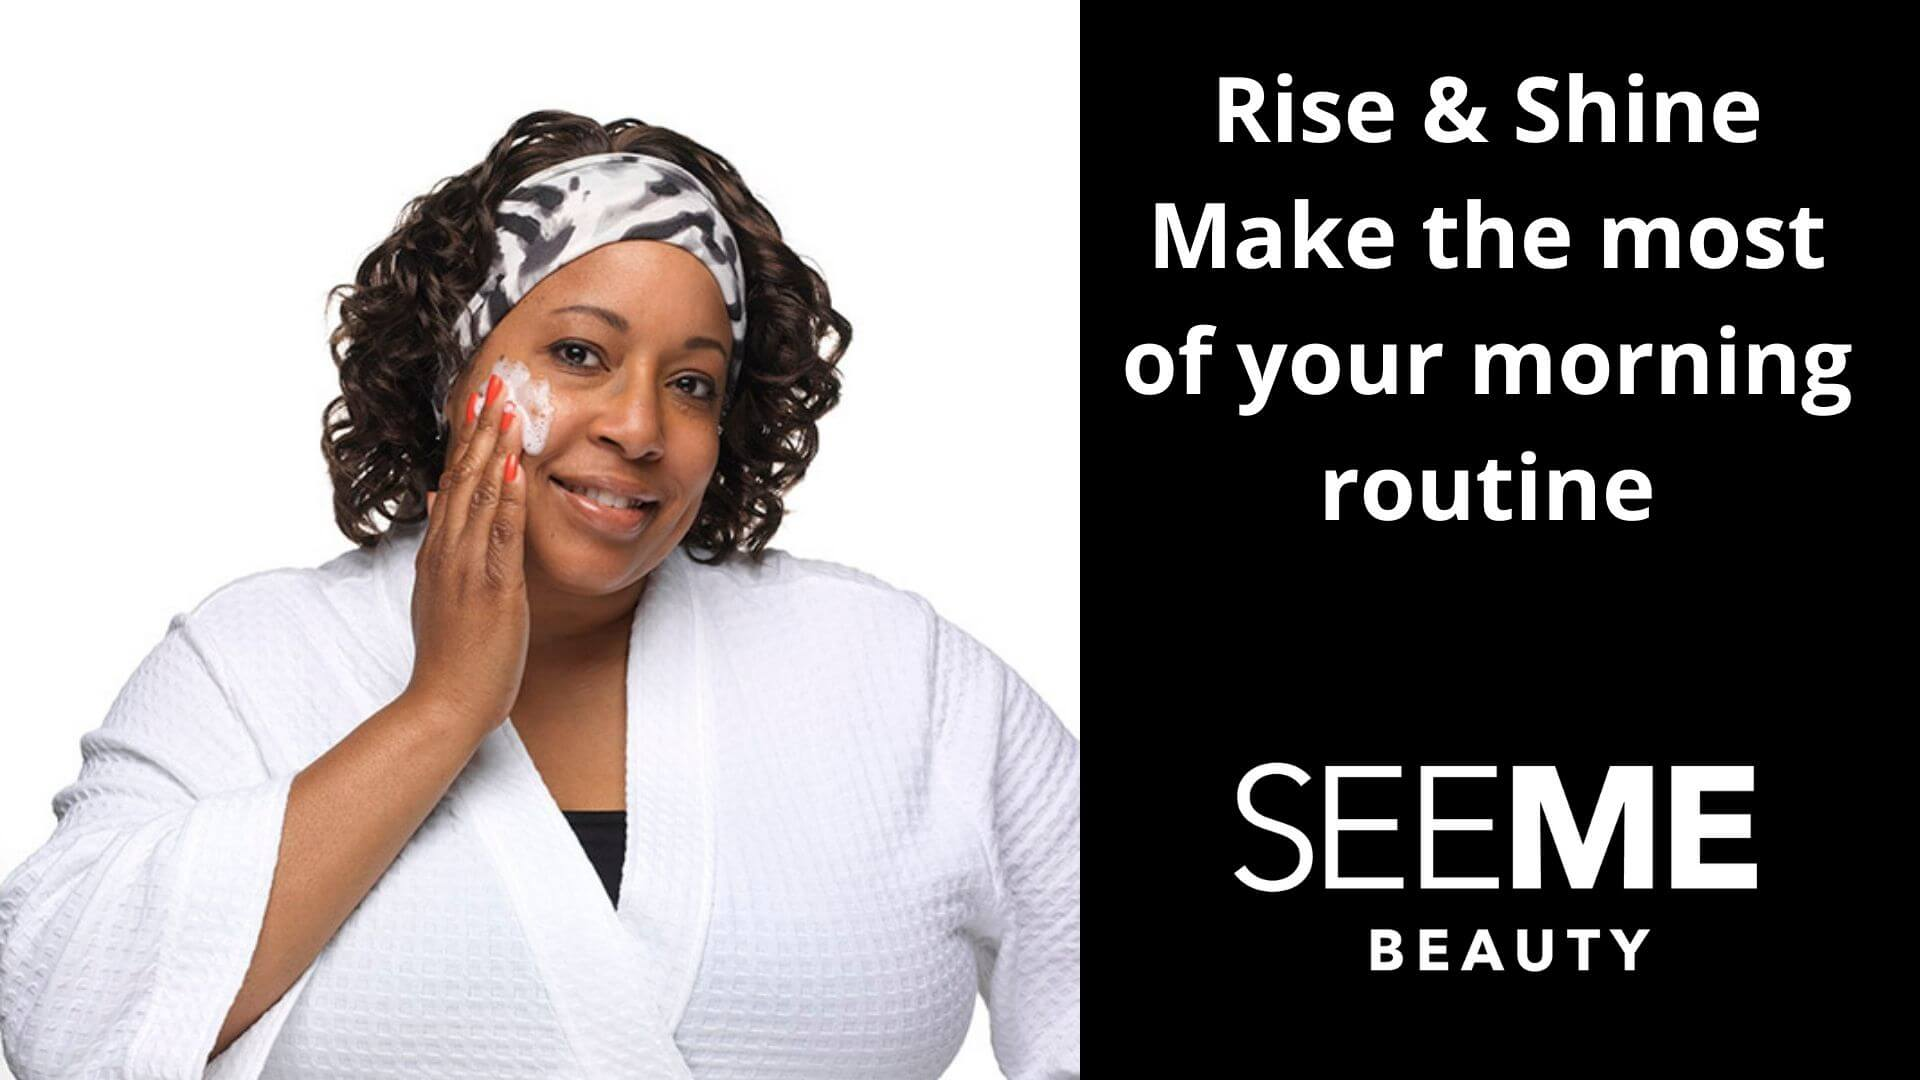 Rise and shine – Make the most of your morning routine. SeeMe Beauty Model applying cleanser on her right cheek wearing a white bathroom robe